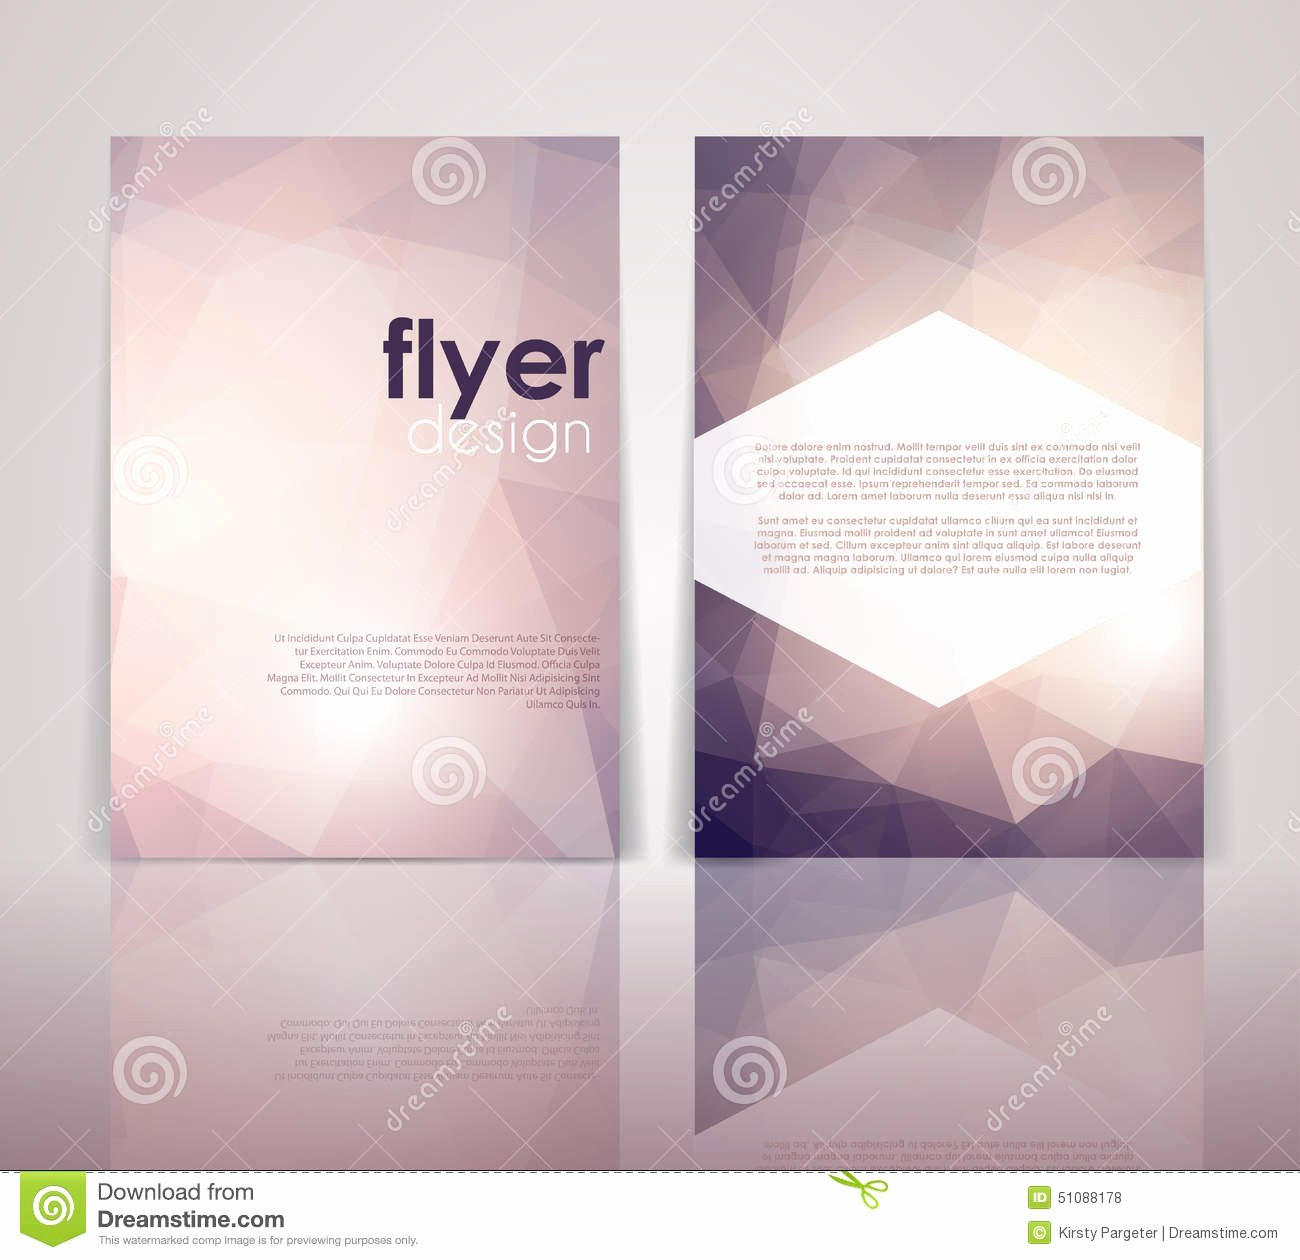 Double Sided Flyer Template Lovely Double Sided Flyer Design Stock Vector Image Of ornament